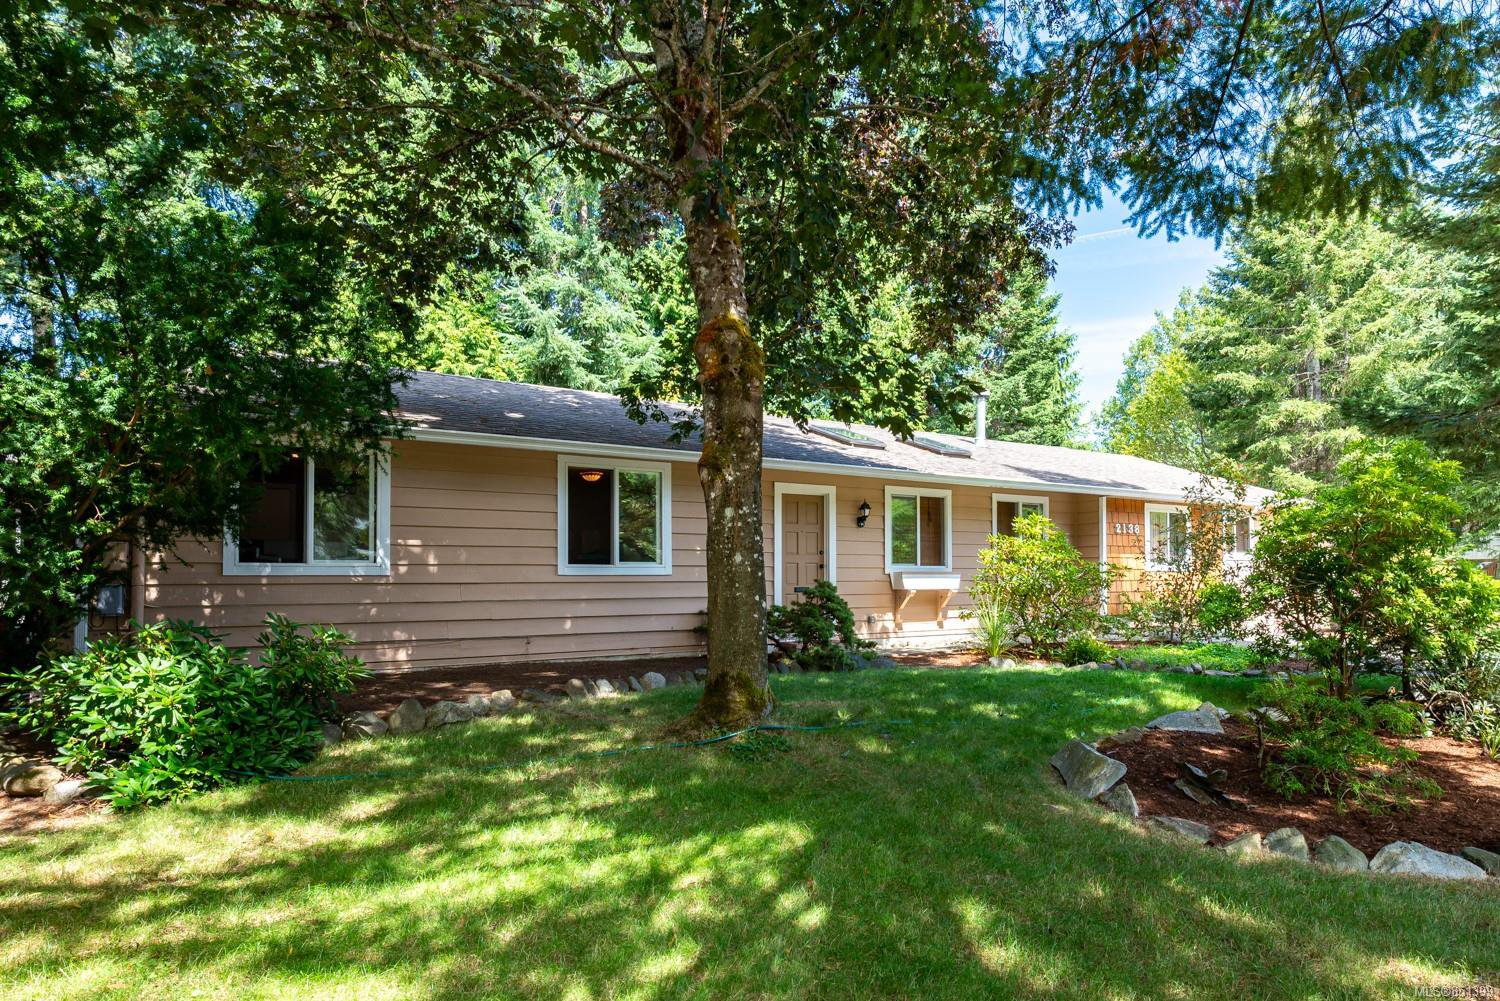 Main Photo: 2138 NOEL Ave in : CV Comox (Town of) House for sale (Comox Valley)  : MLS®# 851399